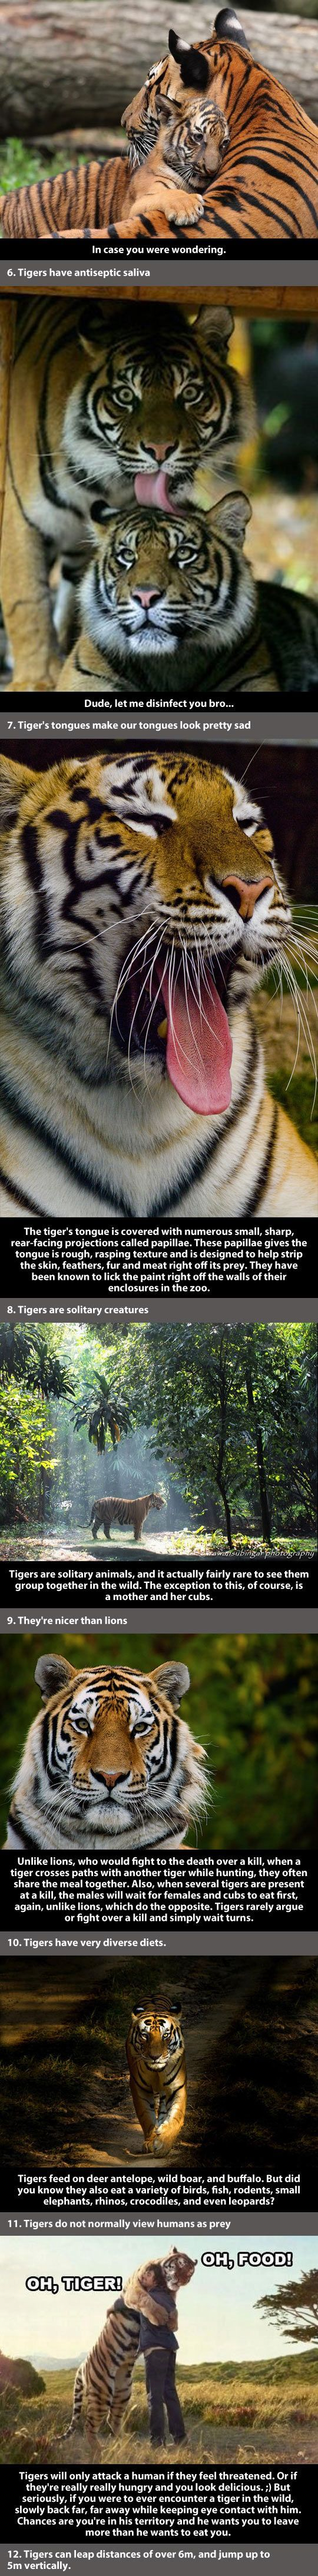 Tigers are awesome...